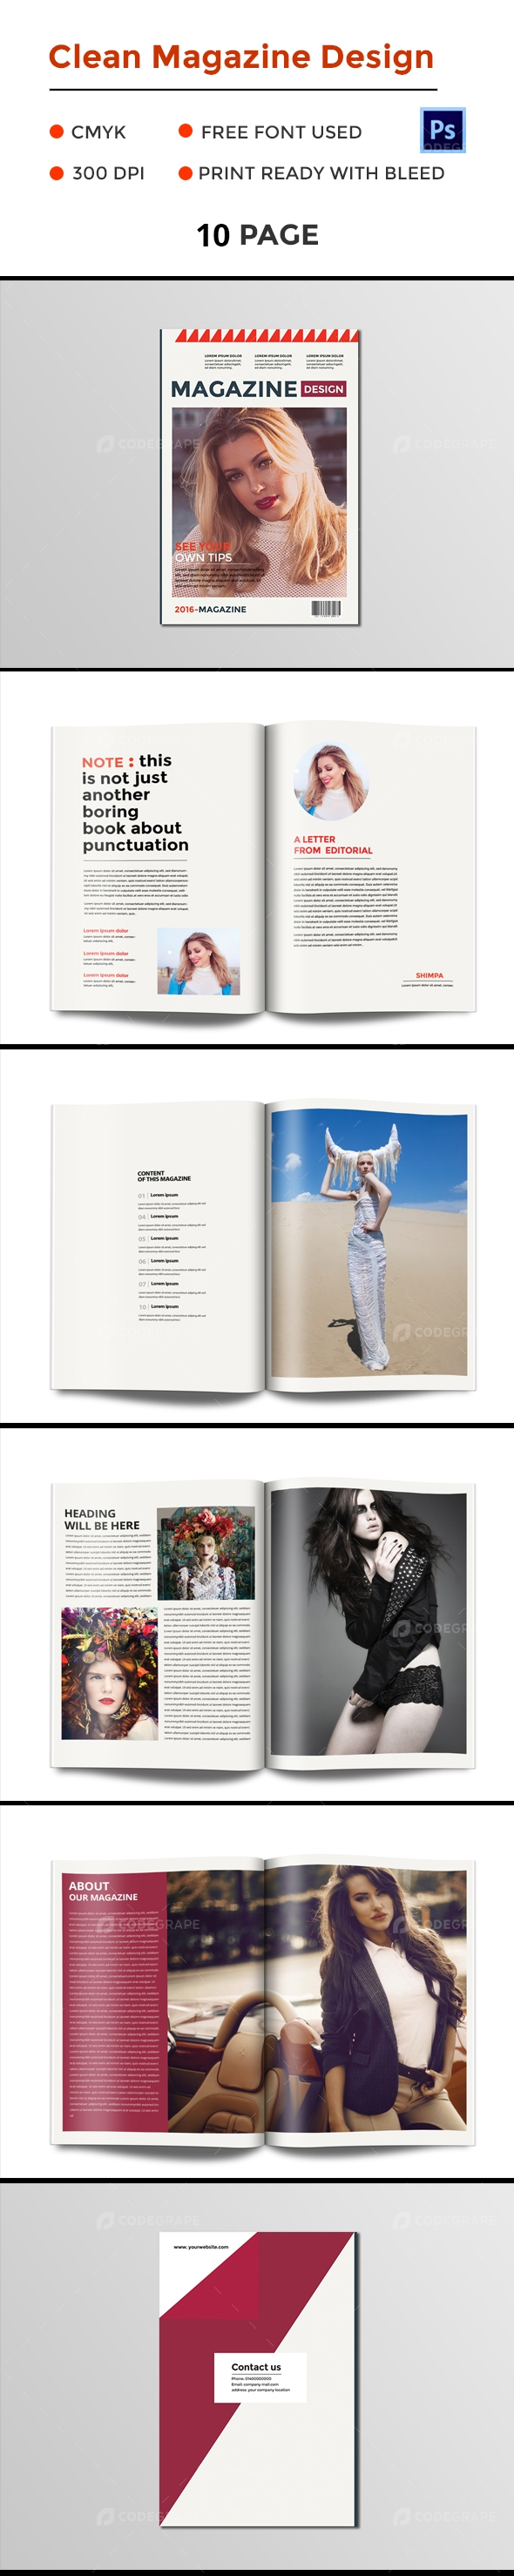 Clean Magazine Design